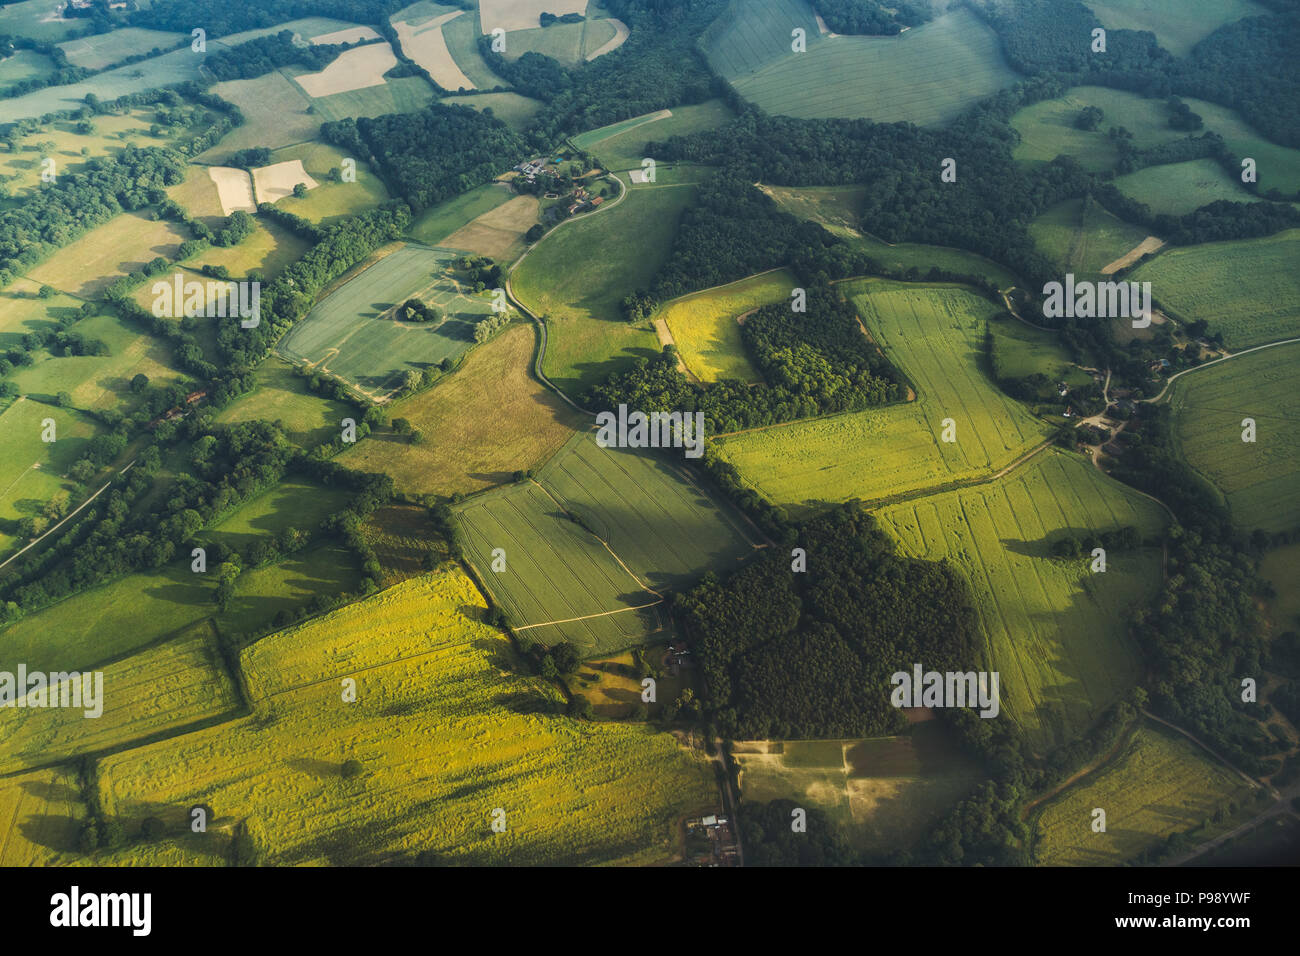 patches of grassy green British farmland seen while flying into the United Kingdom Stock Photo